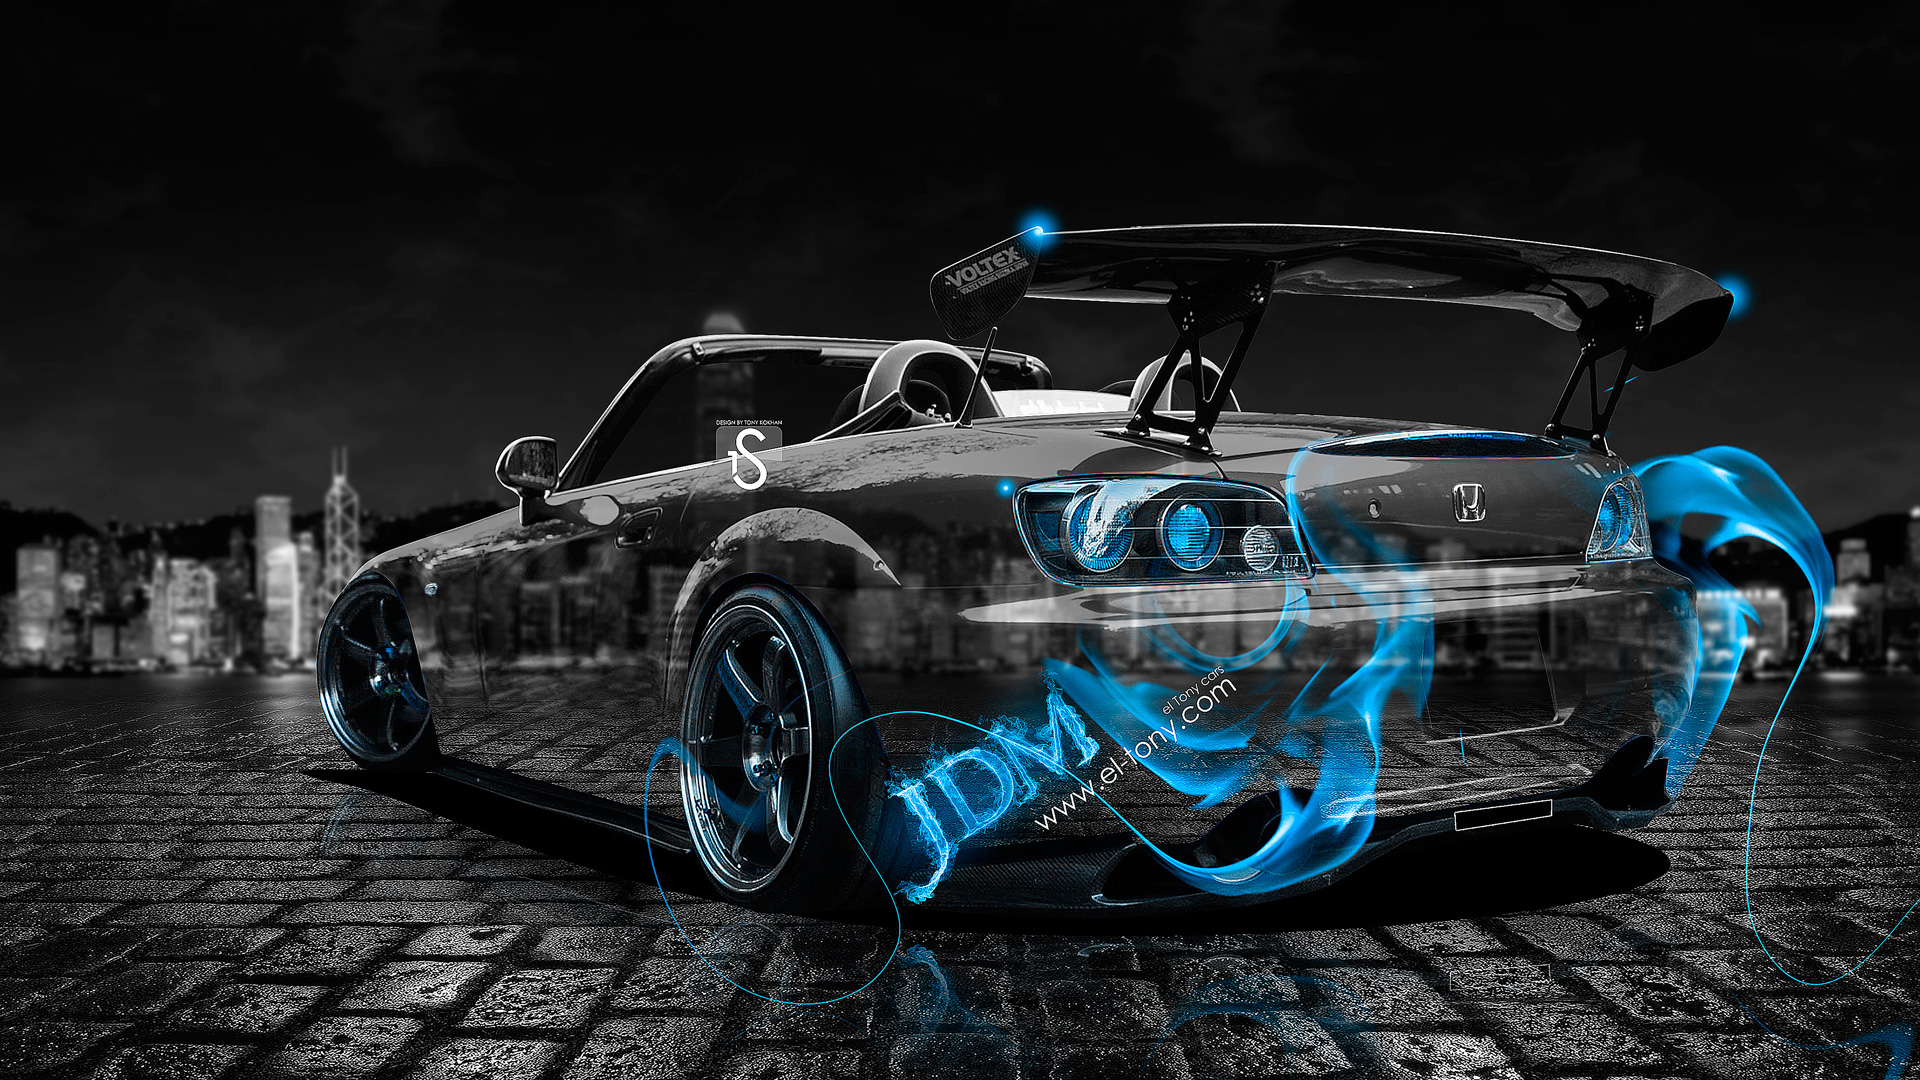 Lovely Honda S2000 JDM Blue Fire Crystal Car 2013